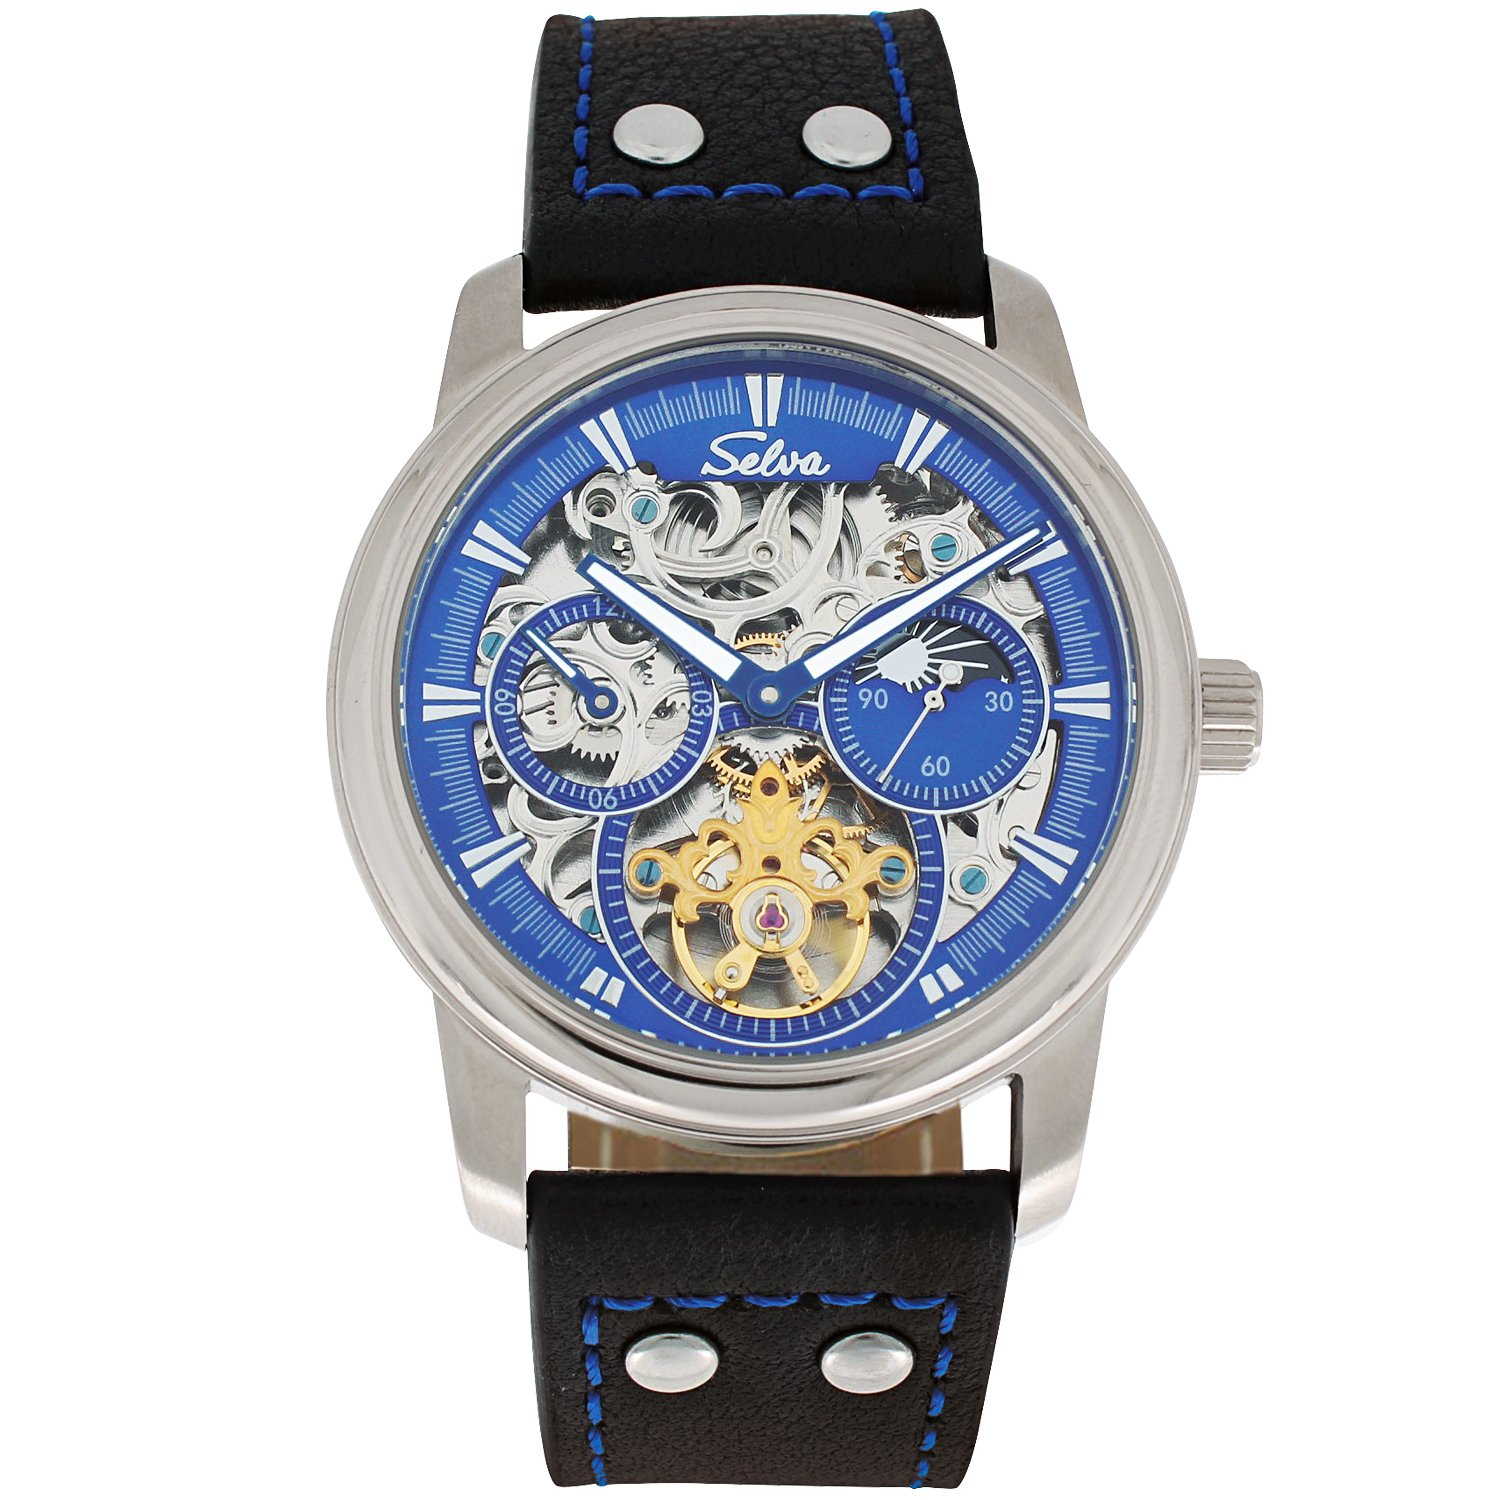 SELVA Men's Watch »Ramon« -sun/moon - skeletonized - Blue-Motion